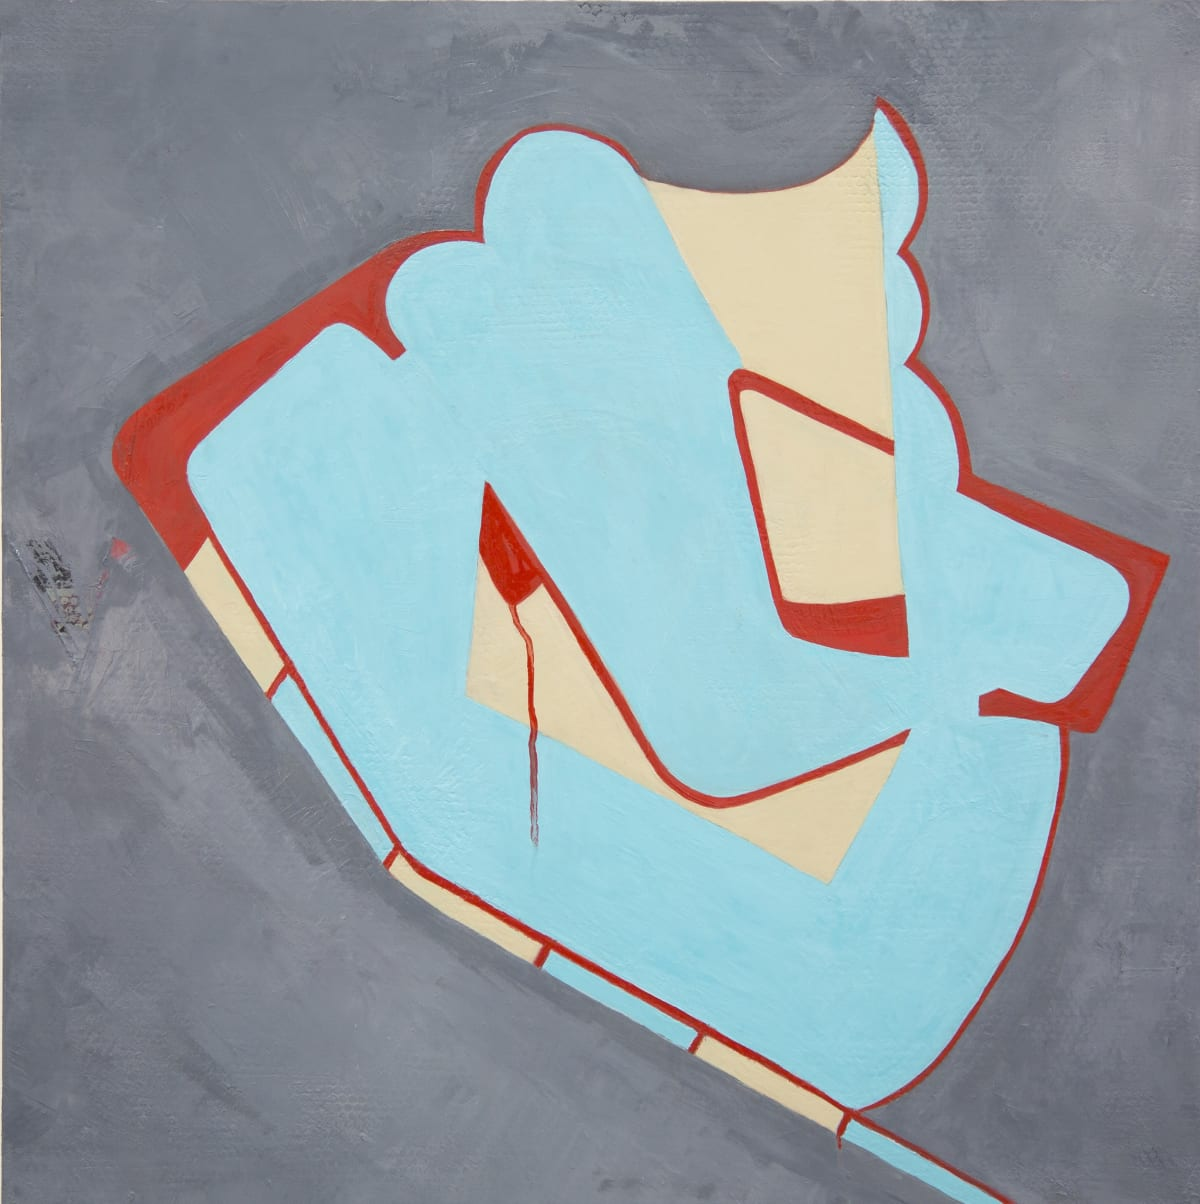 """Fran Shalom's """"Moxie"""" oil on canvas using primary and neutral colors. This painting has a graffiti-like design that consists of light turquoise, persian red, and cream colors that is centered in a cooler gray background."""